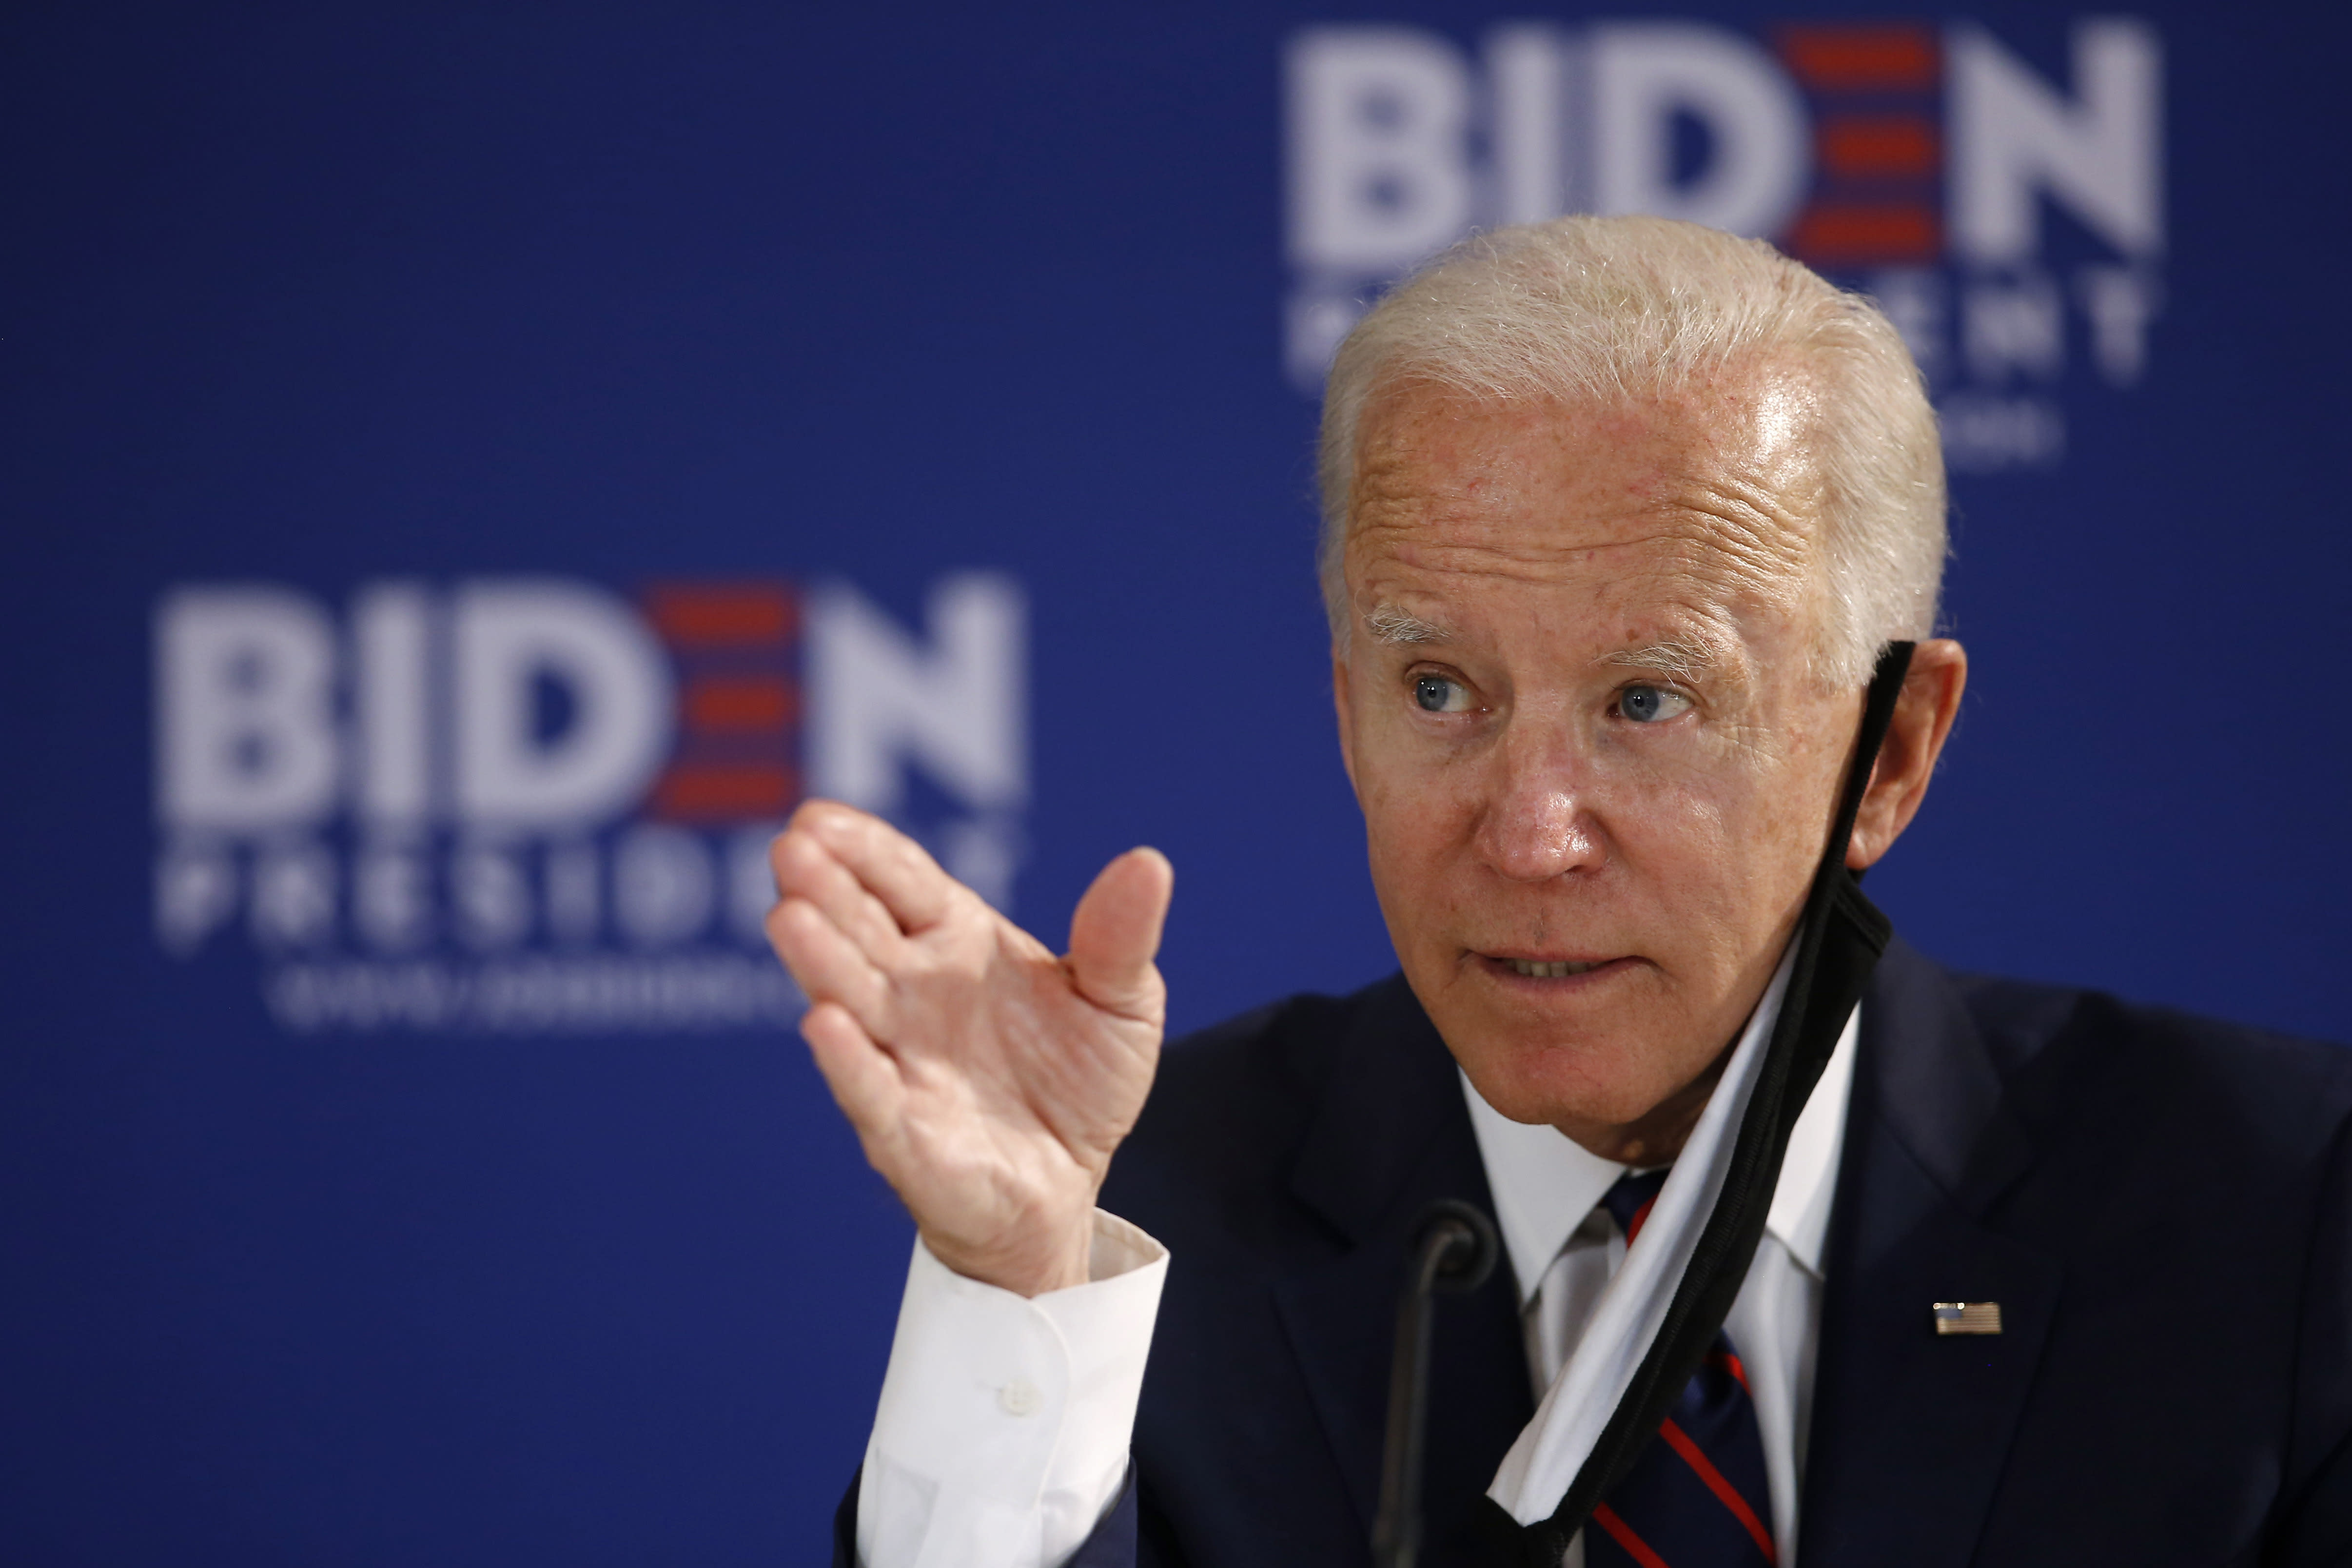 Biden's age might work in his favor